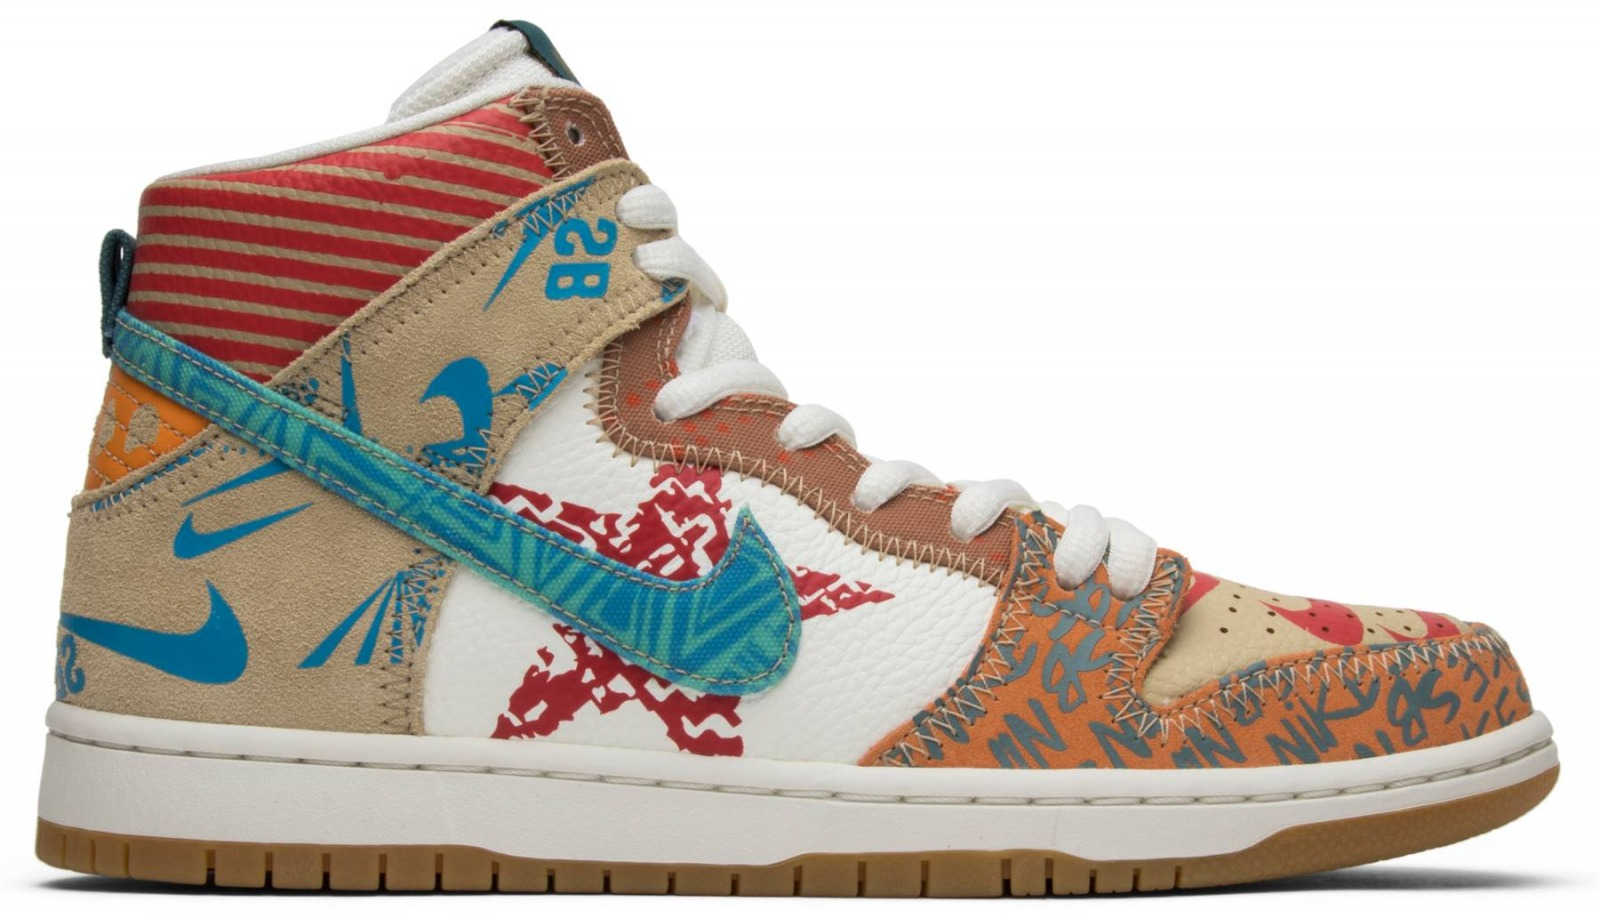 Nike Dunk SB Tony Cambell What - 2